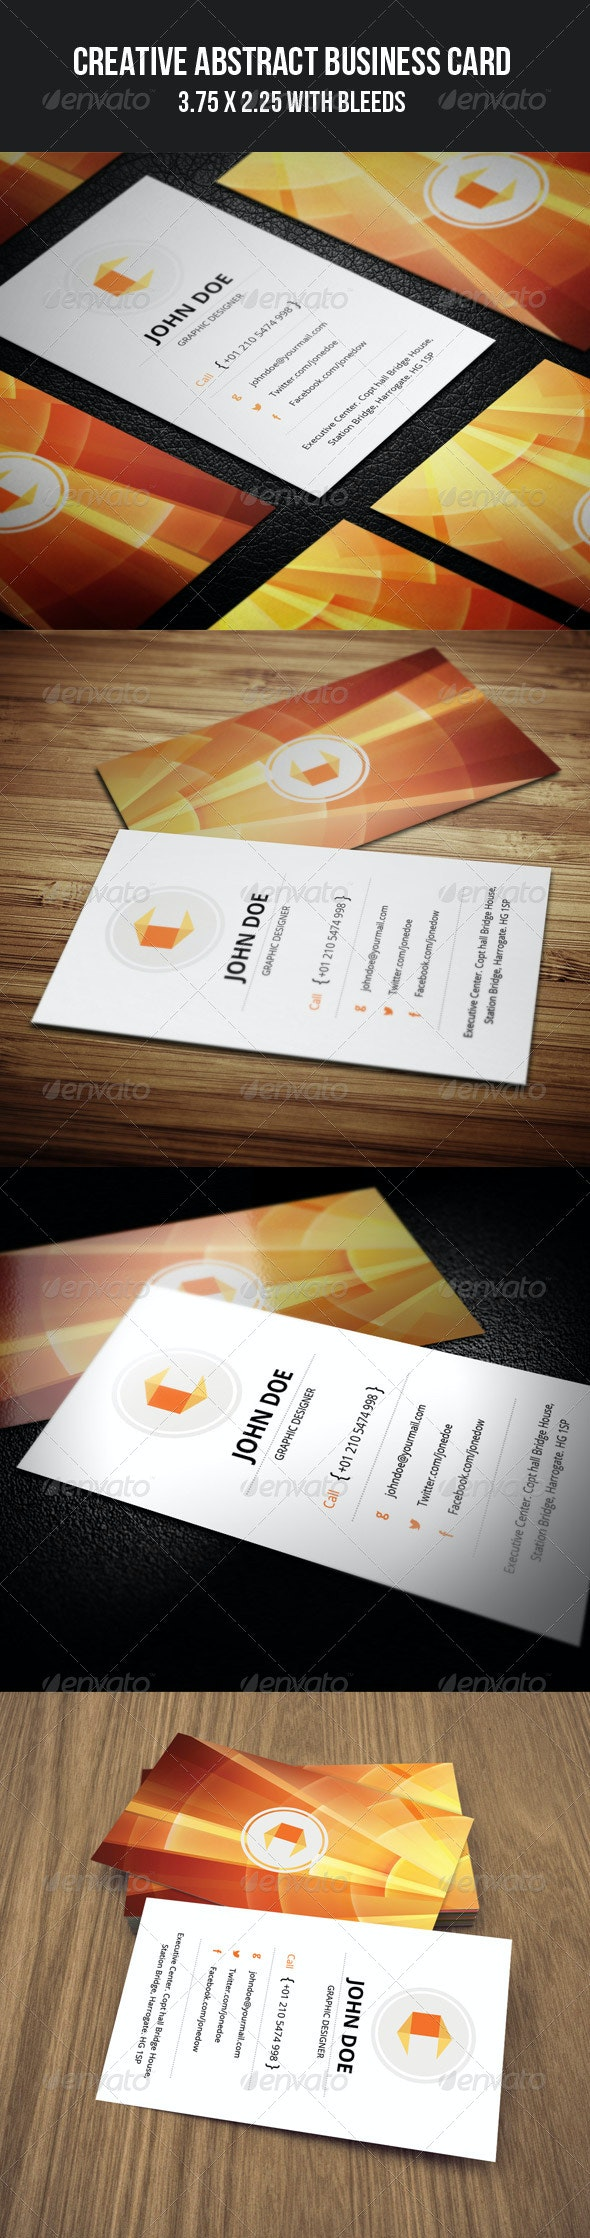 Creative Abstract Business Card - 45 - Creative Business Cards